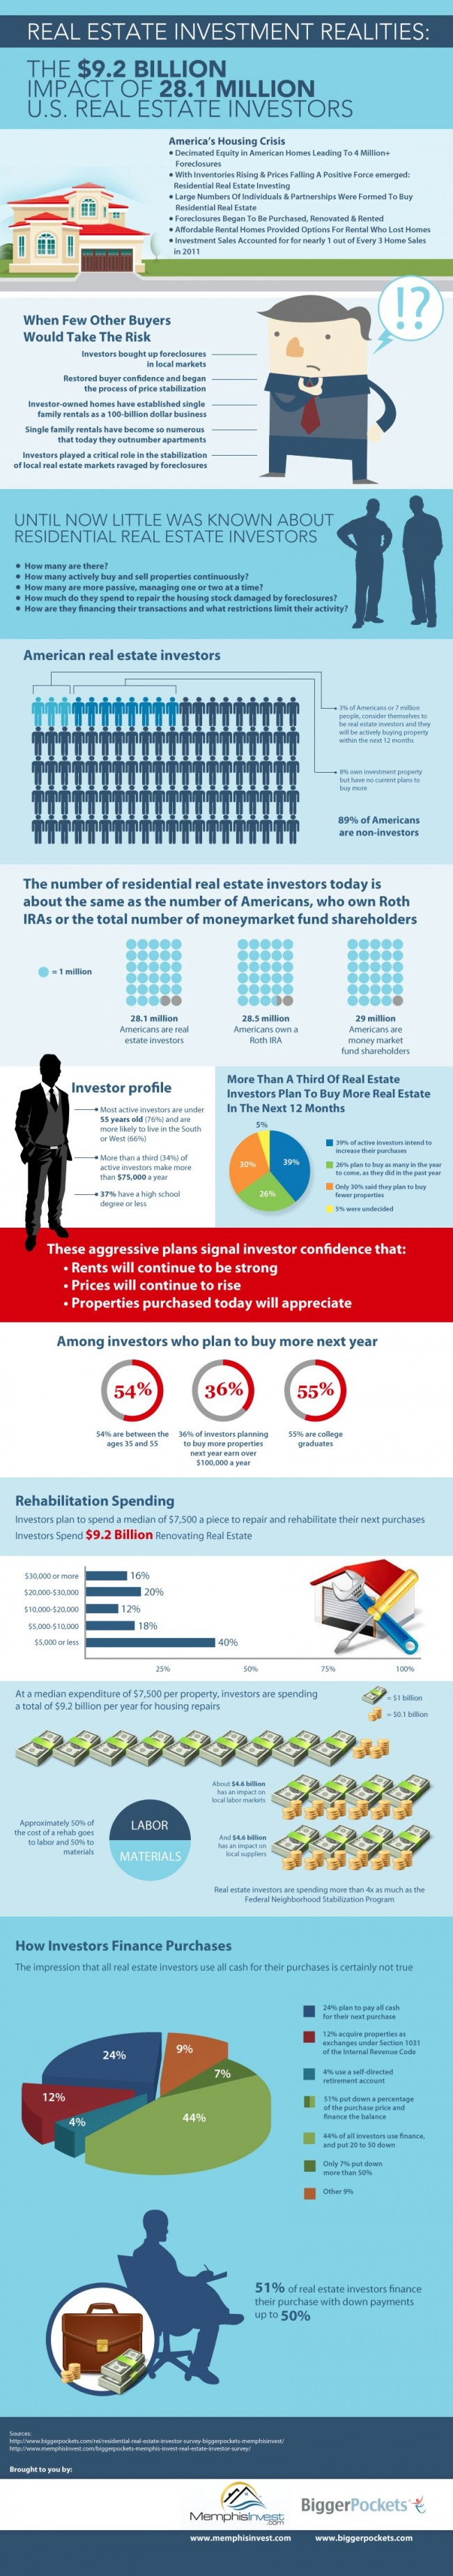 Image Copyright Owners: BiggerPockets.com and Memphis Invest https://www.biggerpockets.com/rei/residential-real-estate-investor-survey-biggerpockets-memphisinvest http://www.memphisinvest.com/biggerpockets-memphis-invest-real-estate-investor-survey/